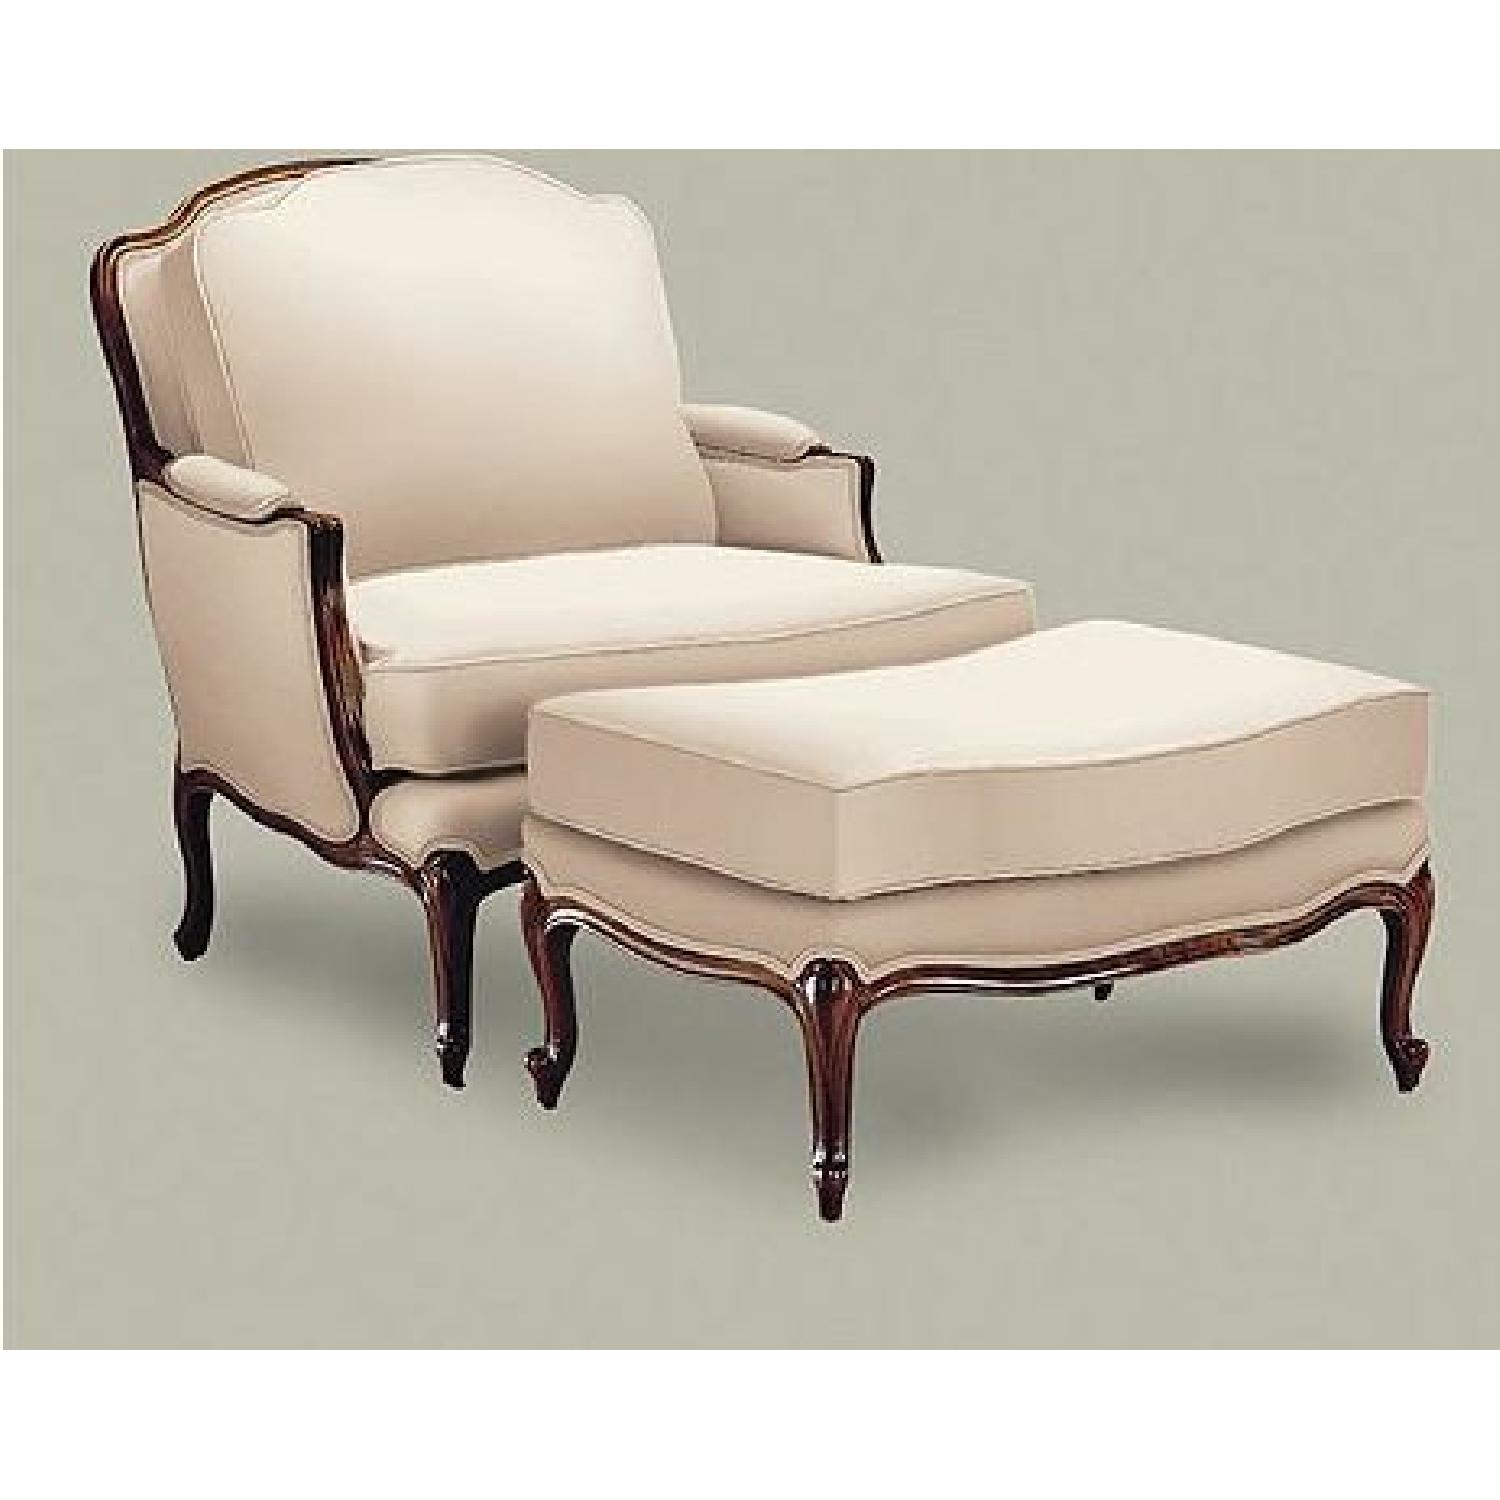 Ethan Allen Versailles Chair and Ottoman - image-4